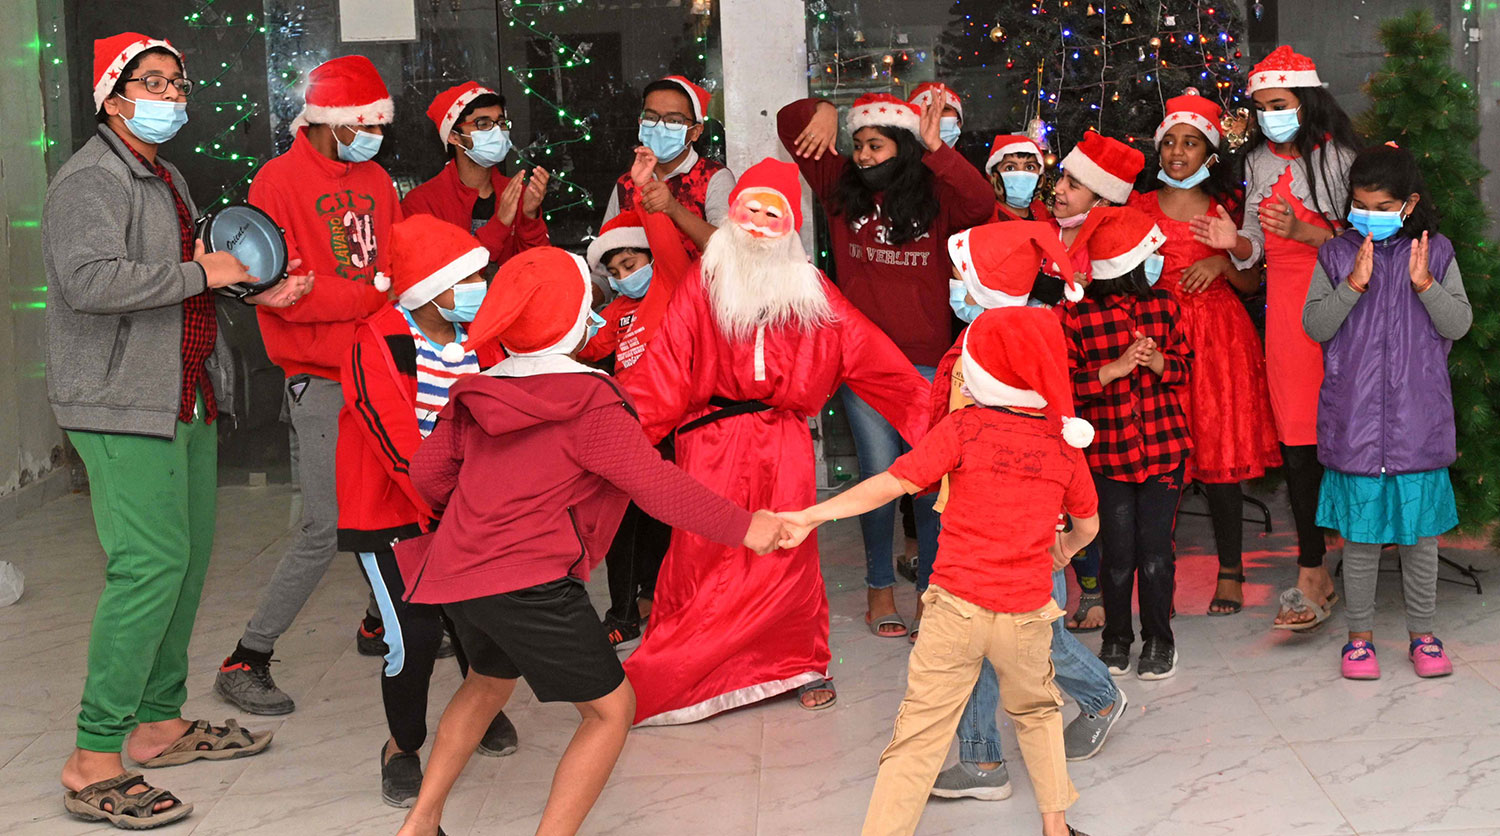 Christmas Joy Complete Cast 2021 Indiansinkuwait Com When The Pandemic Cast A Shadow On The Celebration Kids Share The Joy With Mask Covered Face Hoping That The Year 2021 Will Bring Back All The Lost Joys Of